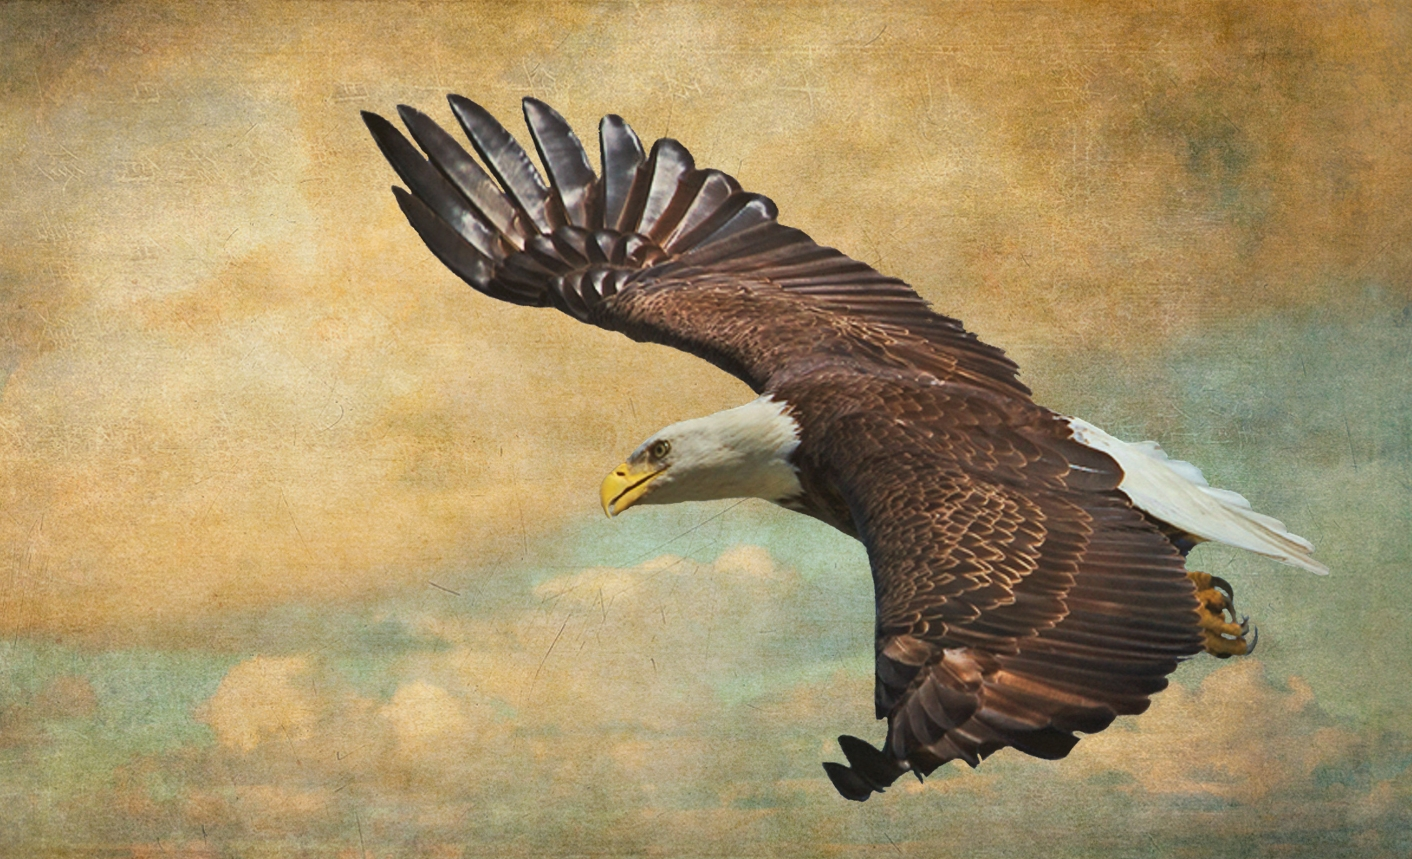 I call this one Vintage Eagle..similar technique using antique wall and sky overlays in layers.